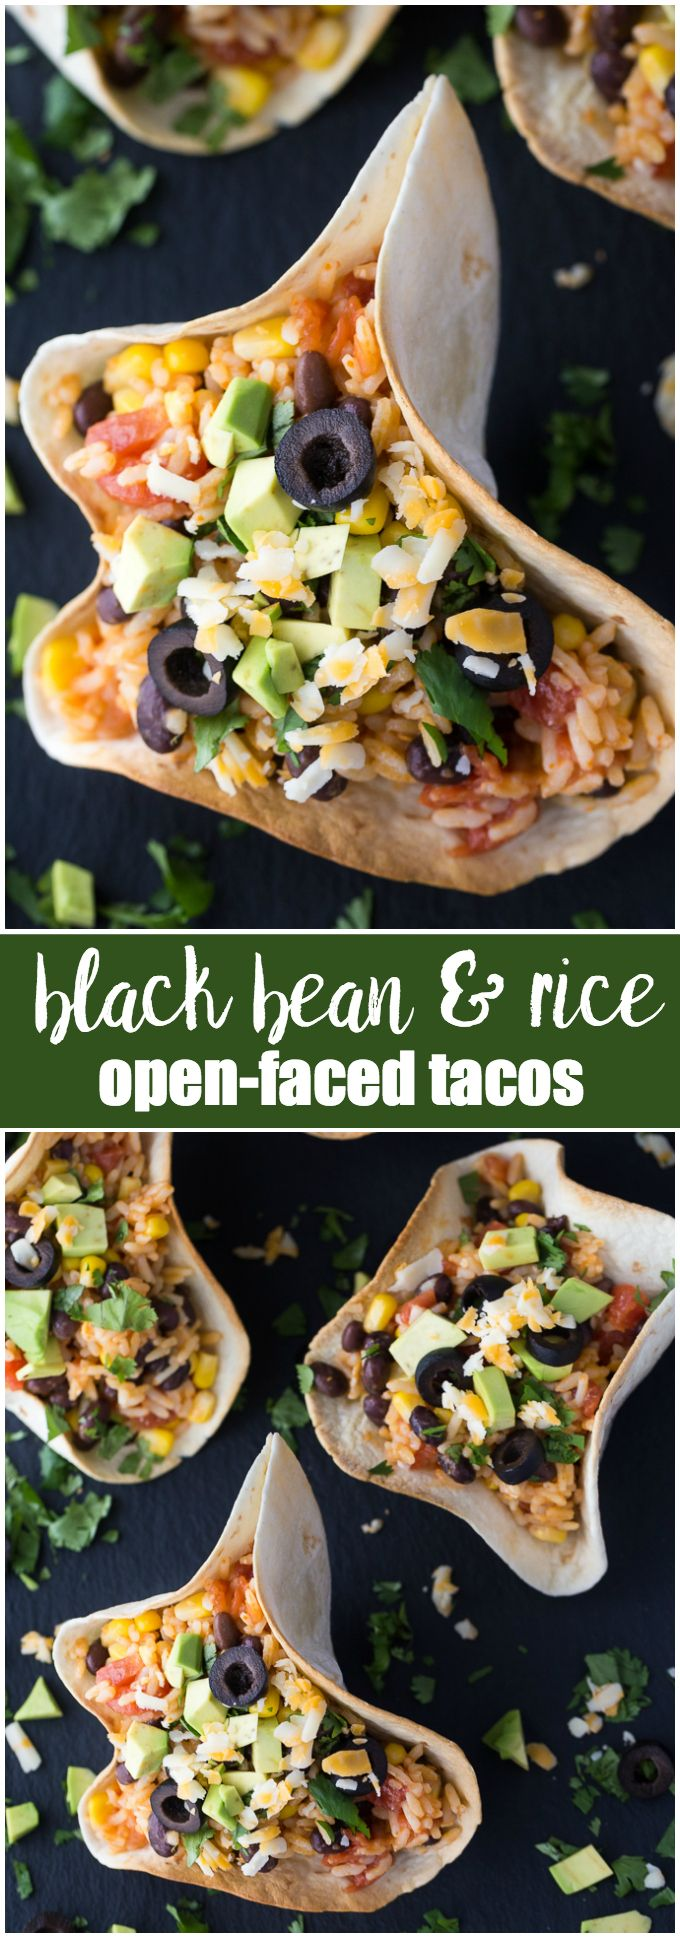 Black Bean & Rice Open-Faced Tacos - Kids love to help make this recipe of yummy tortilla bowls filled with flavourful Mexican rice.